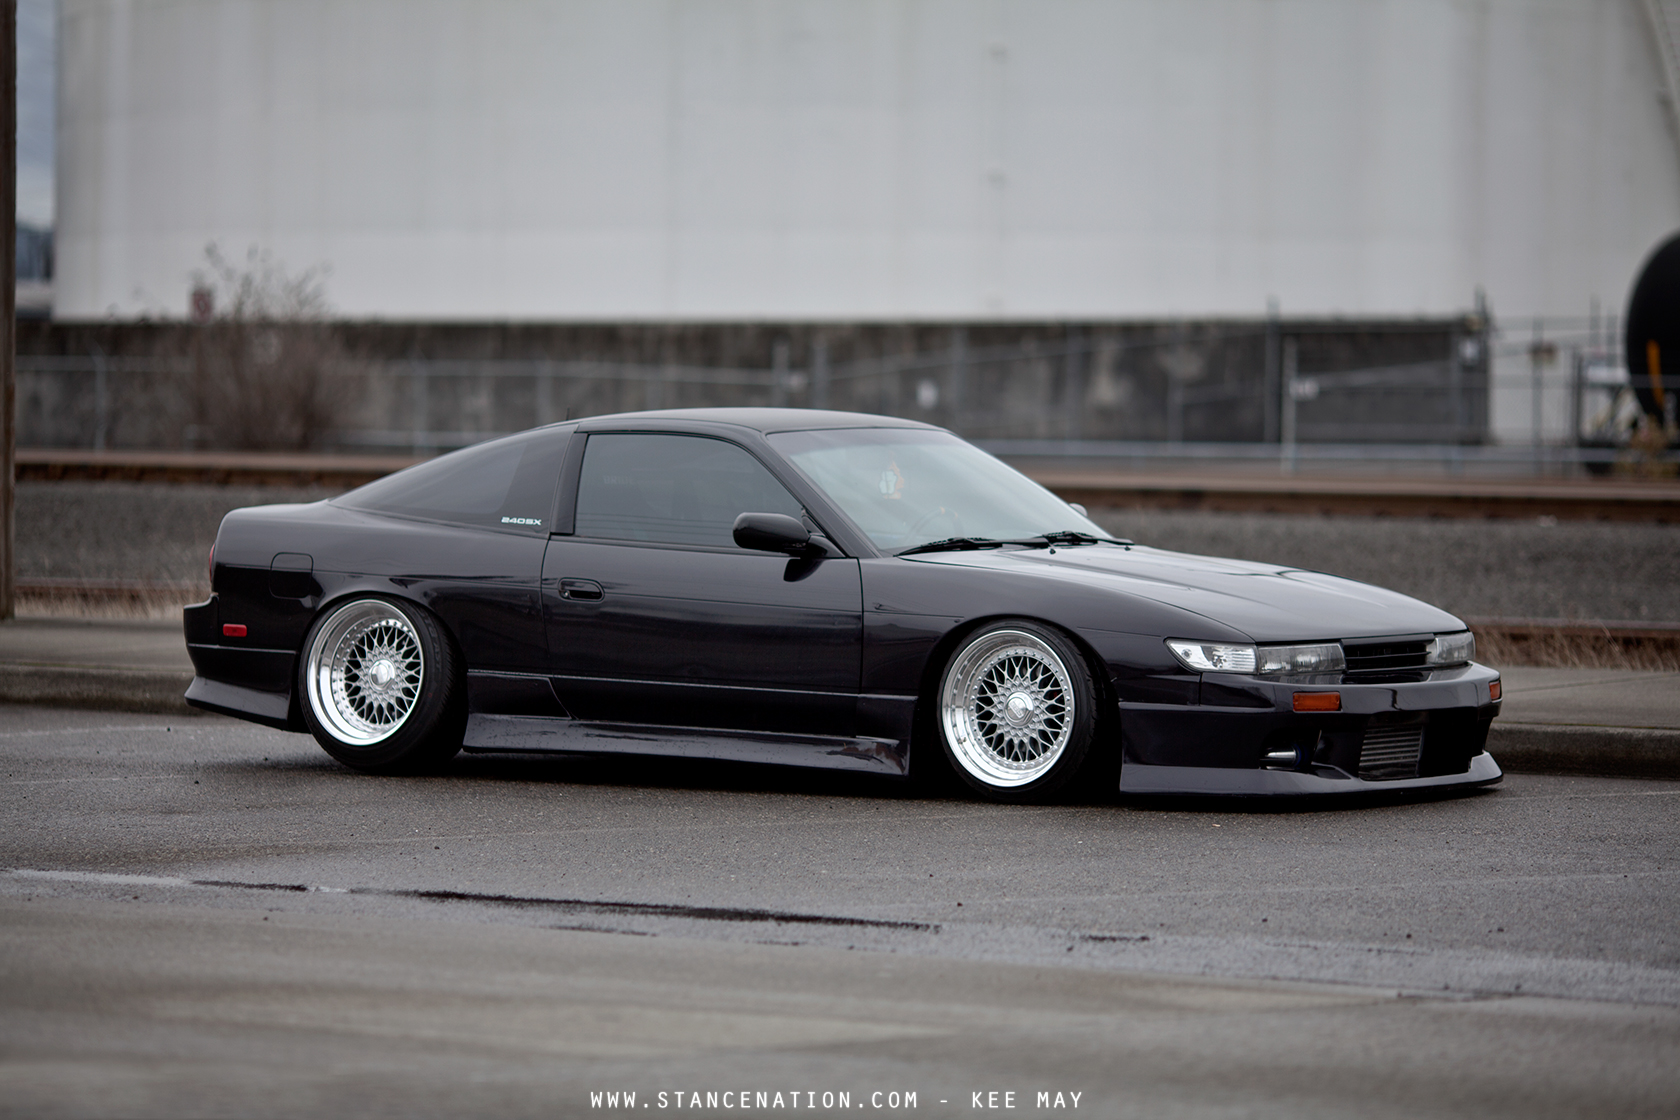 S13 Hatch With Silvia Front End Conversion 240sx